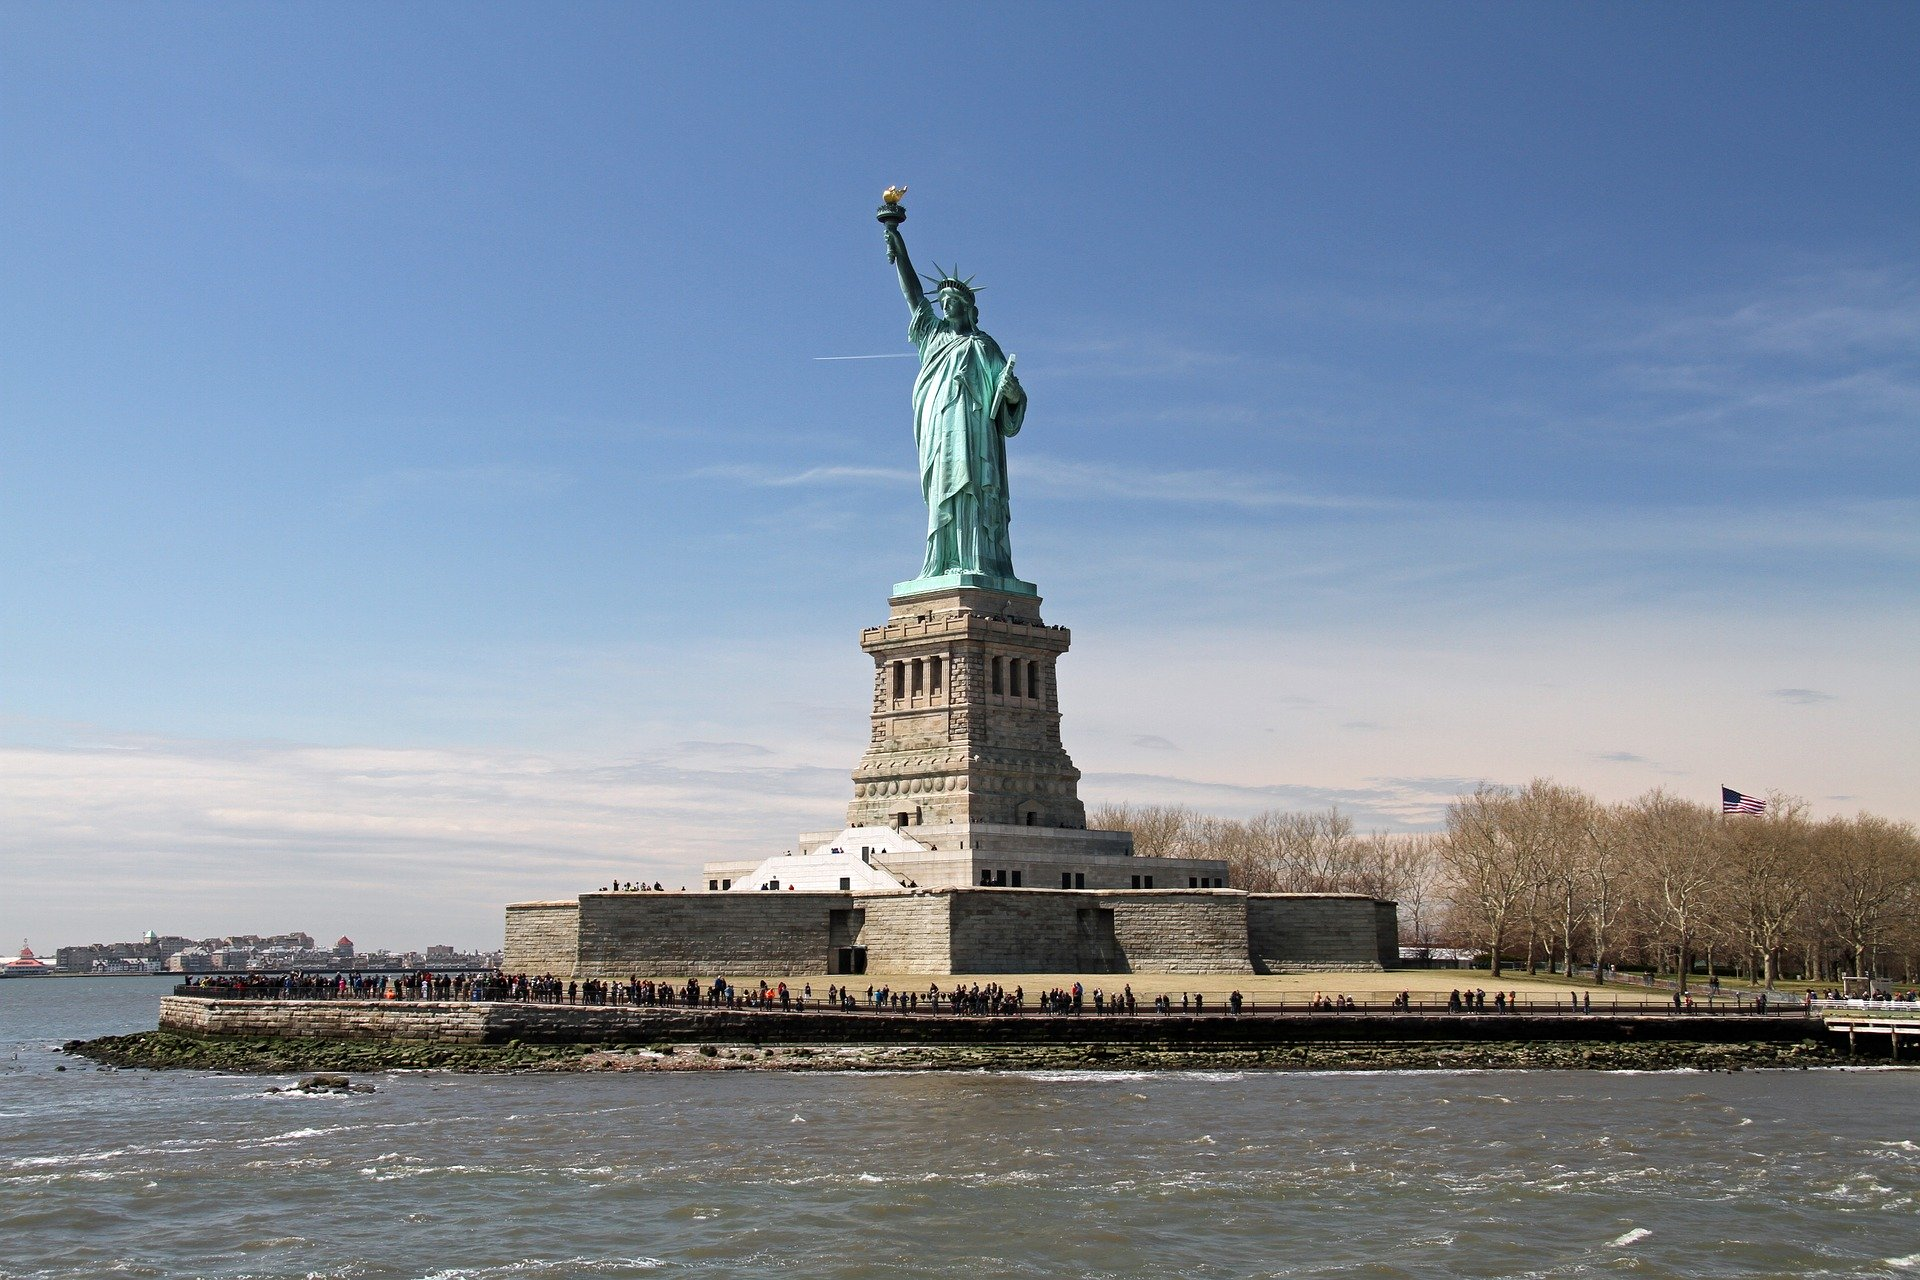 New York Explorer | Statue of Liberty, New York City, New York State, USA